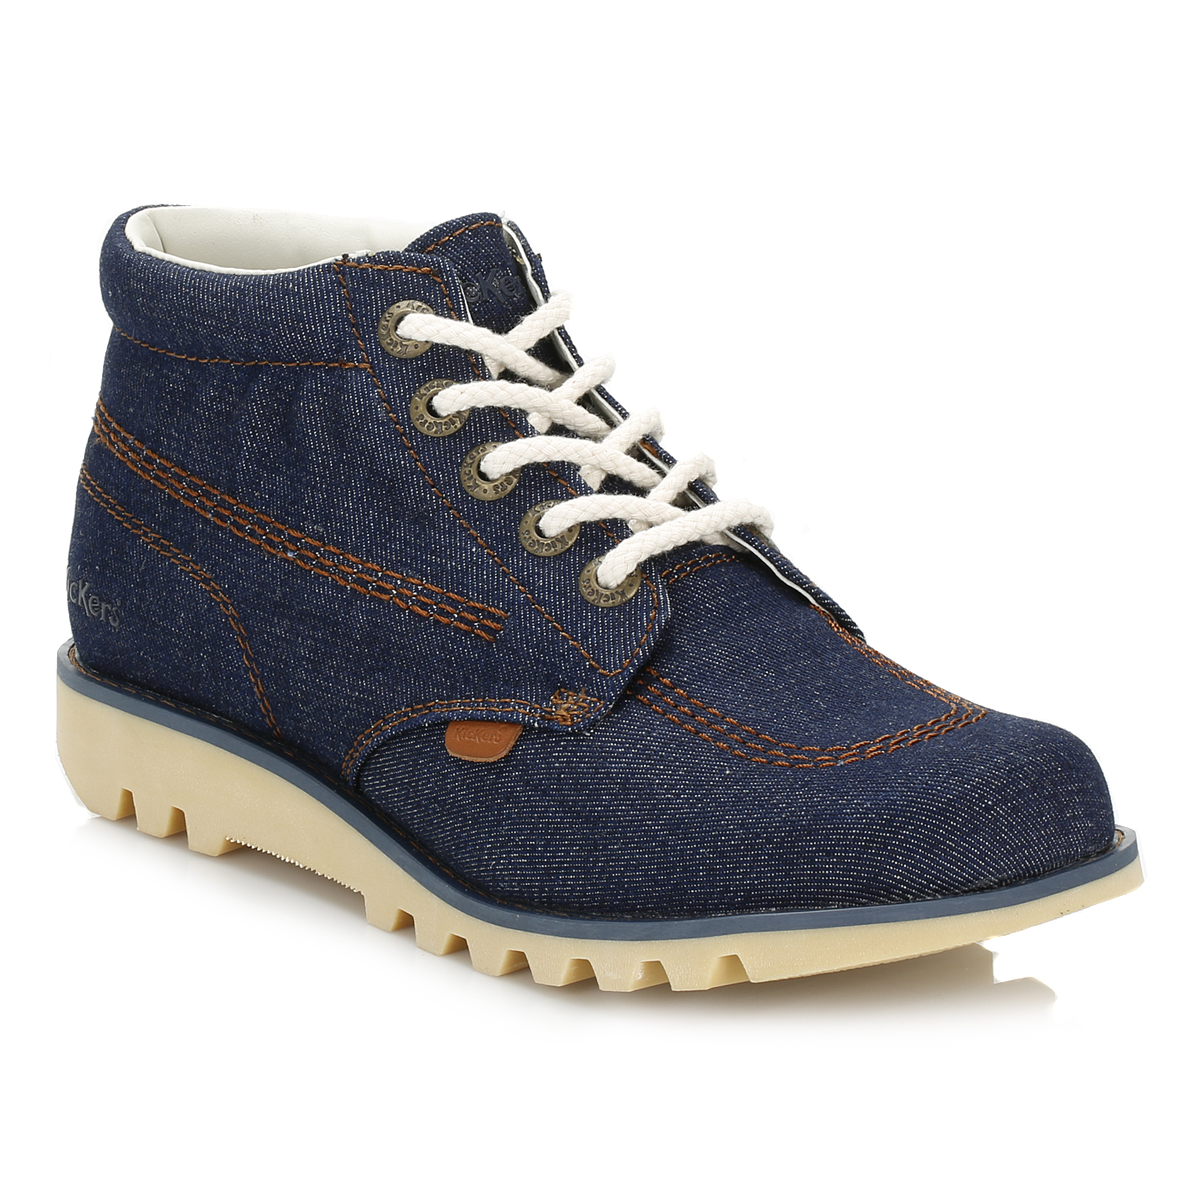 Kickers Womens Kick Hi Denim Boots Blue LaceUp Ladies ...